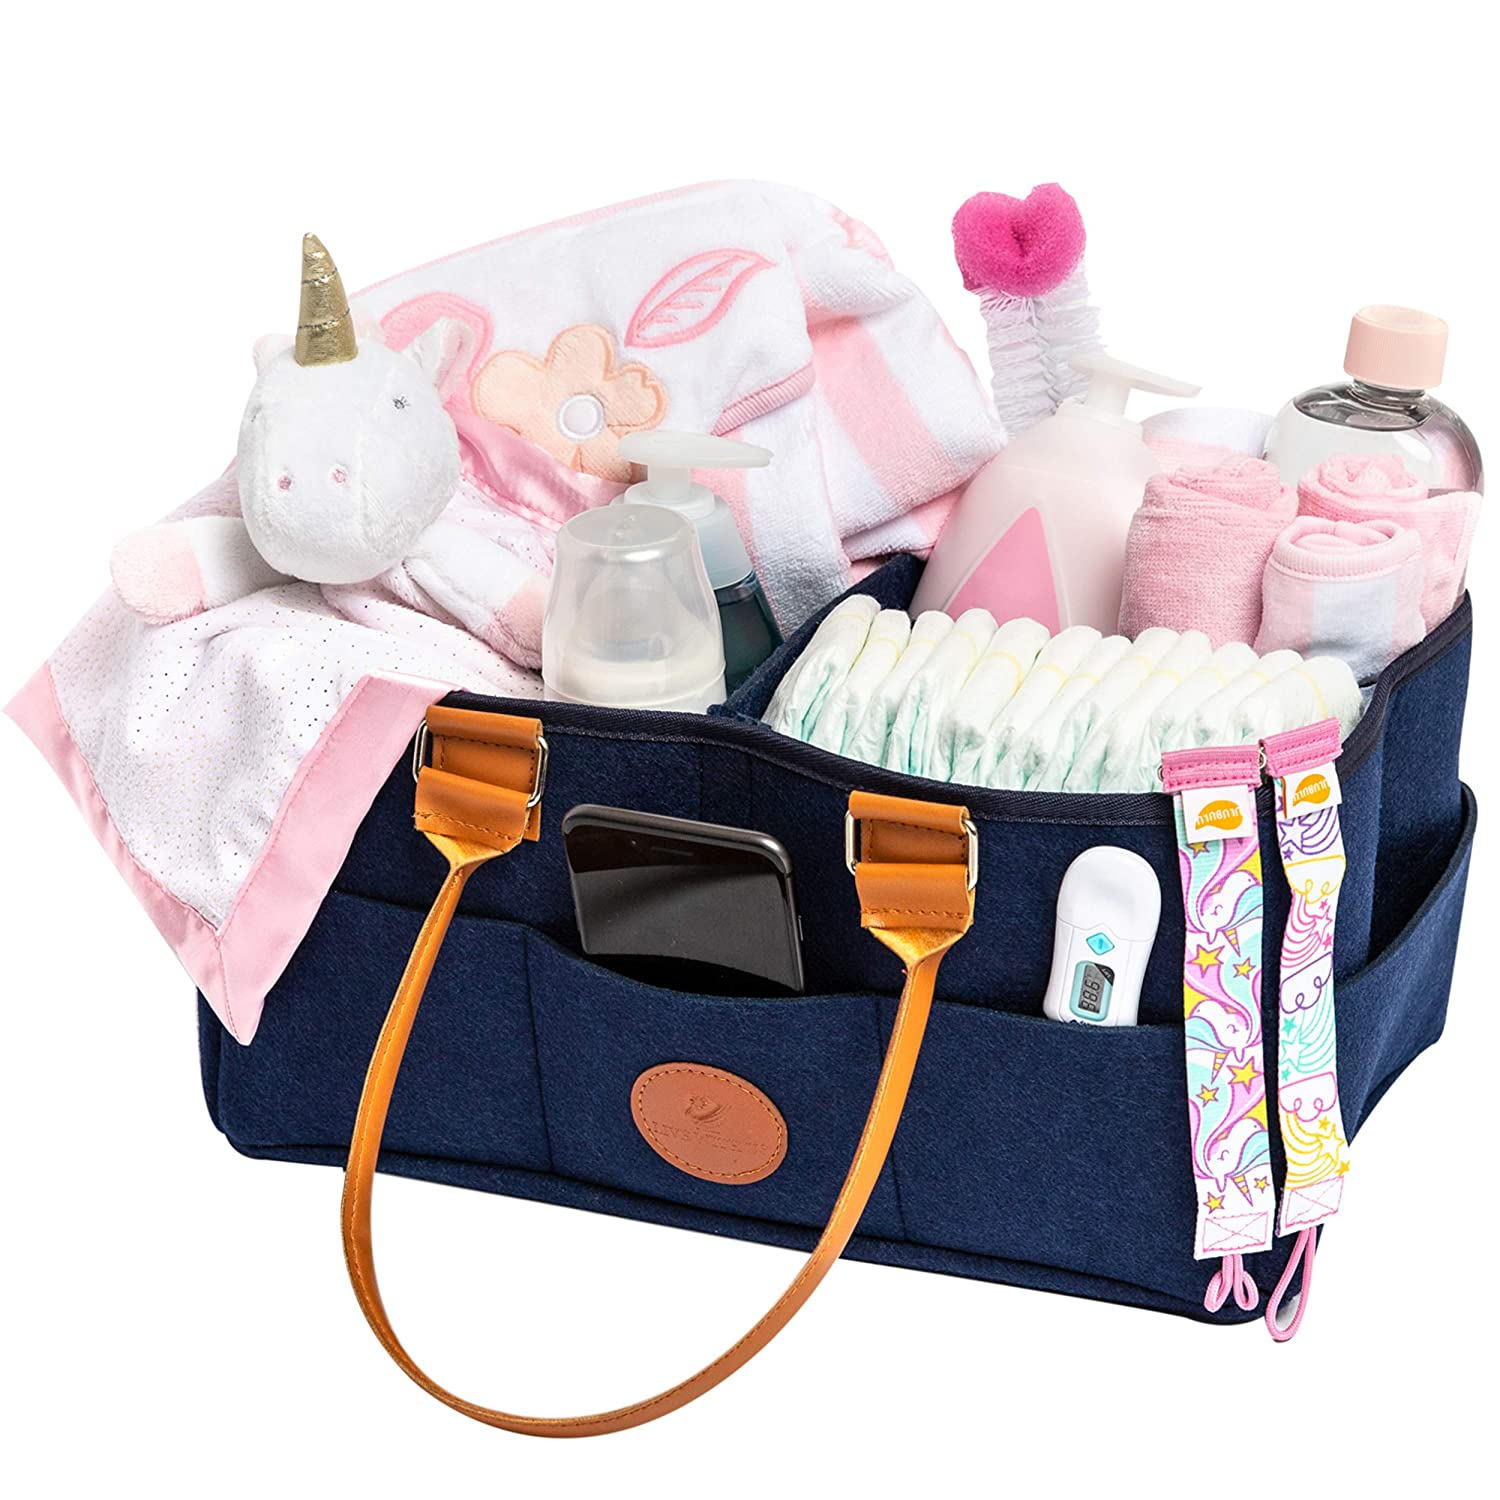 Baby Diaper Caddy and Nursery Organizer (Large) Compact, Portable Bag Storage Babies Infants, Toddlers |External Pockets |Girl, Boy | Newborn Baby Essentials Basket Shower Registry for Changing Table Live With Us